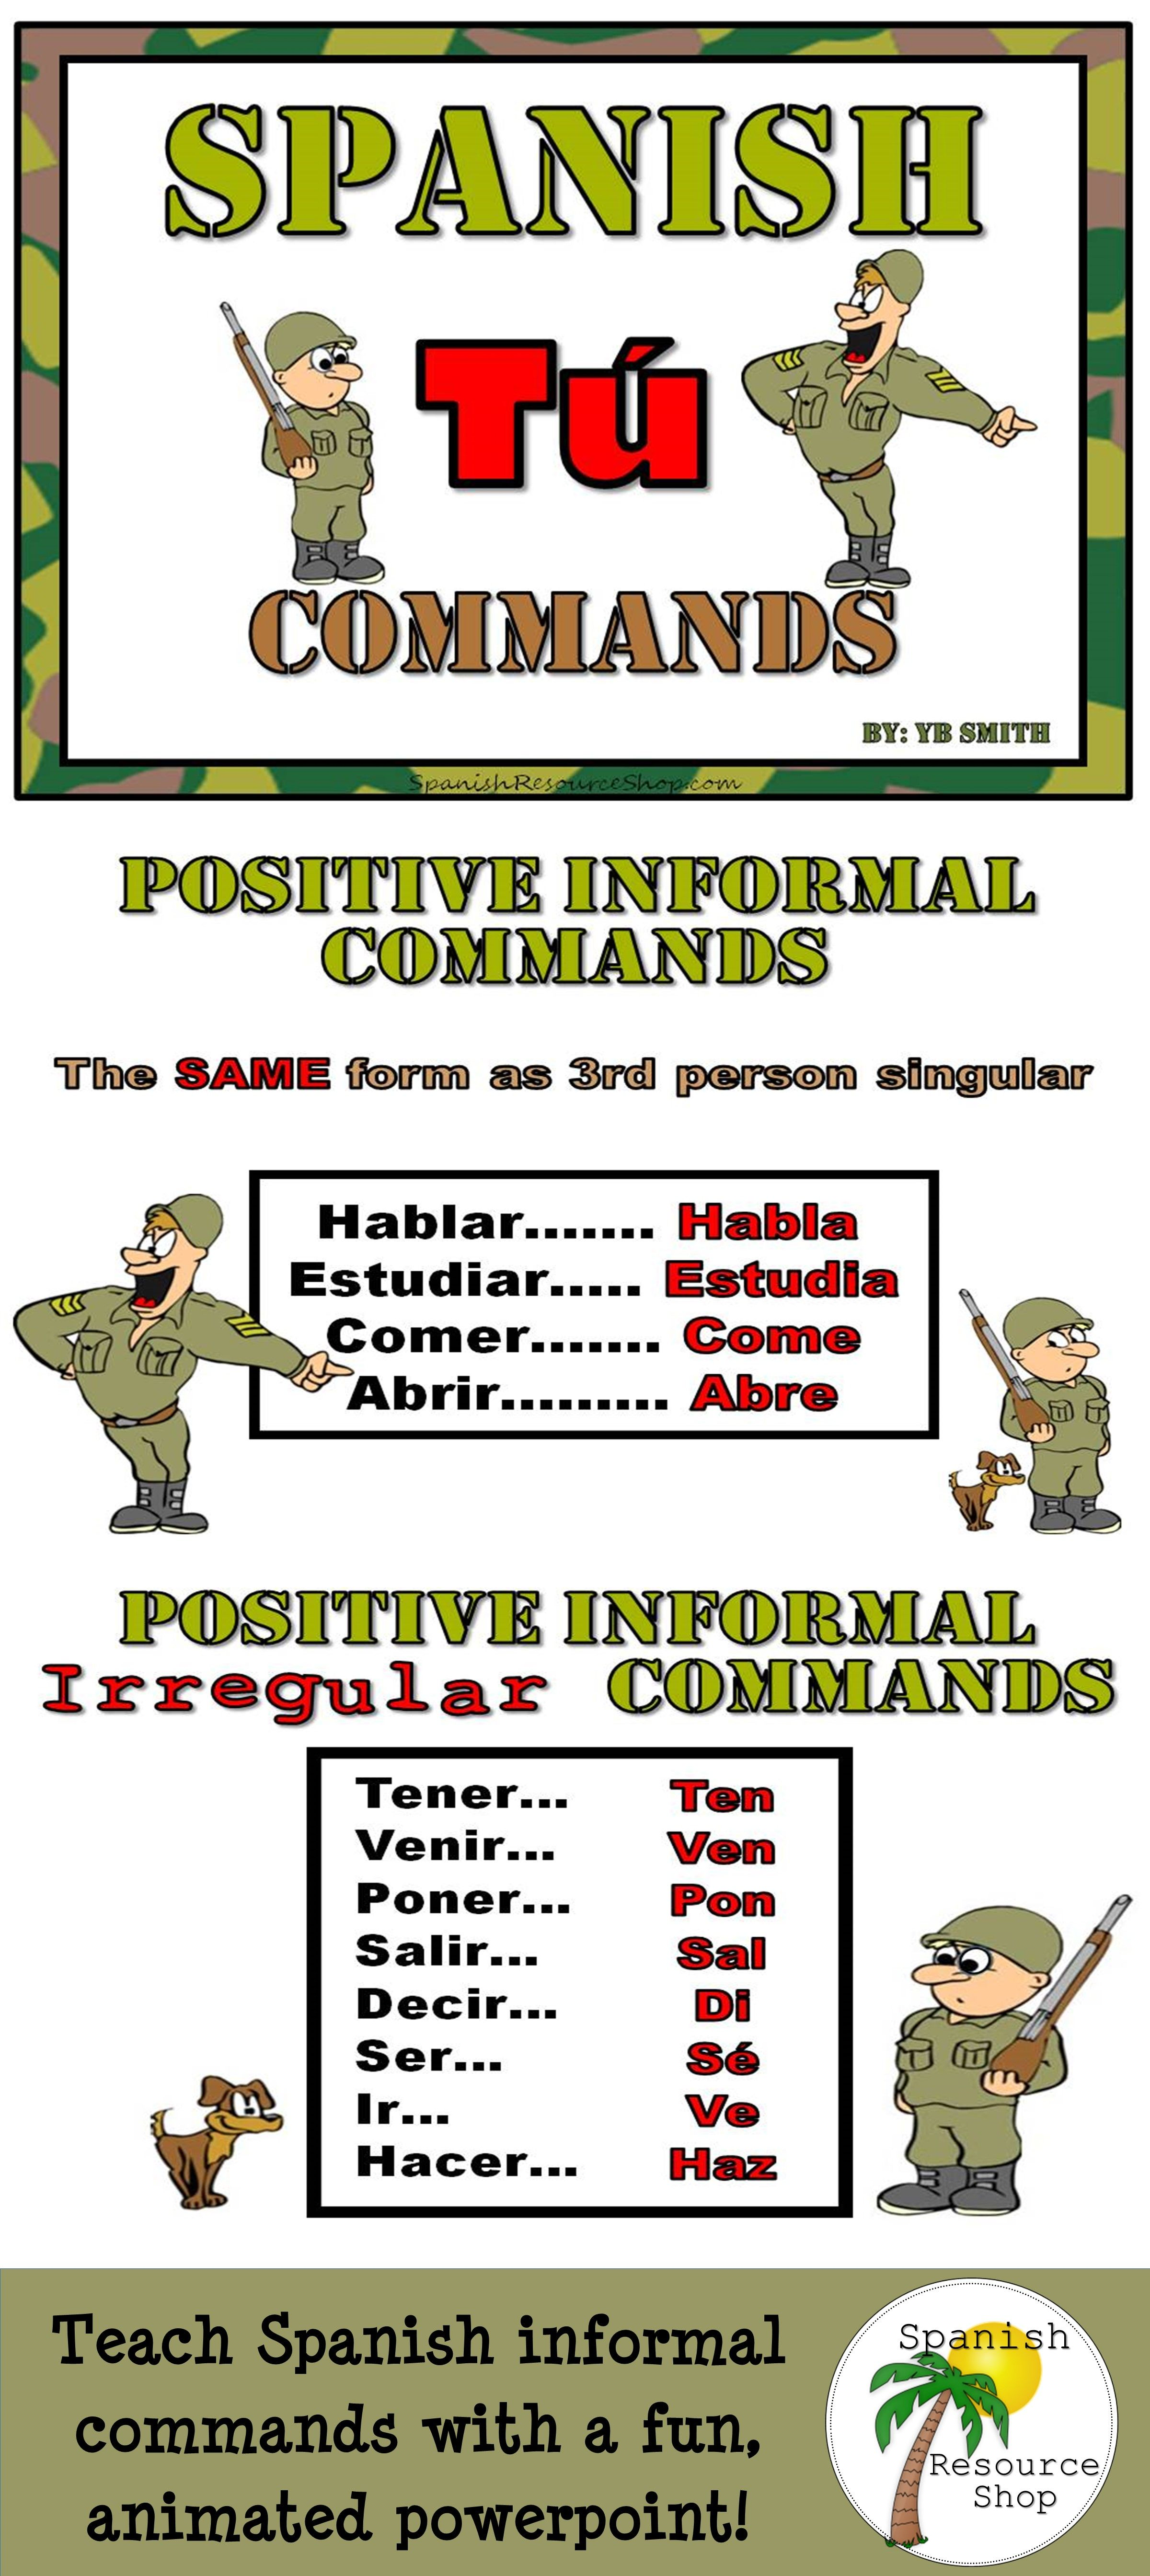 Spanish Commands Informal Grammar Notes And Practice